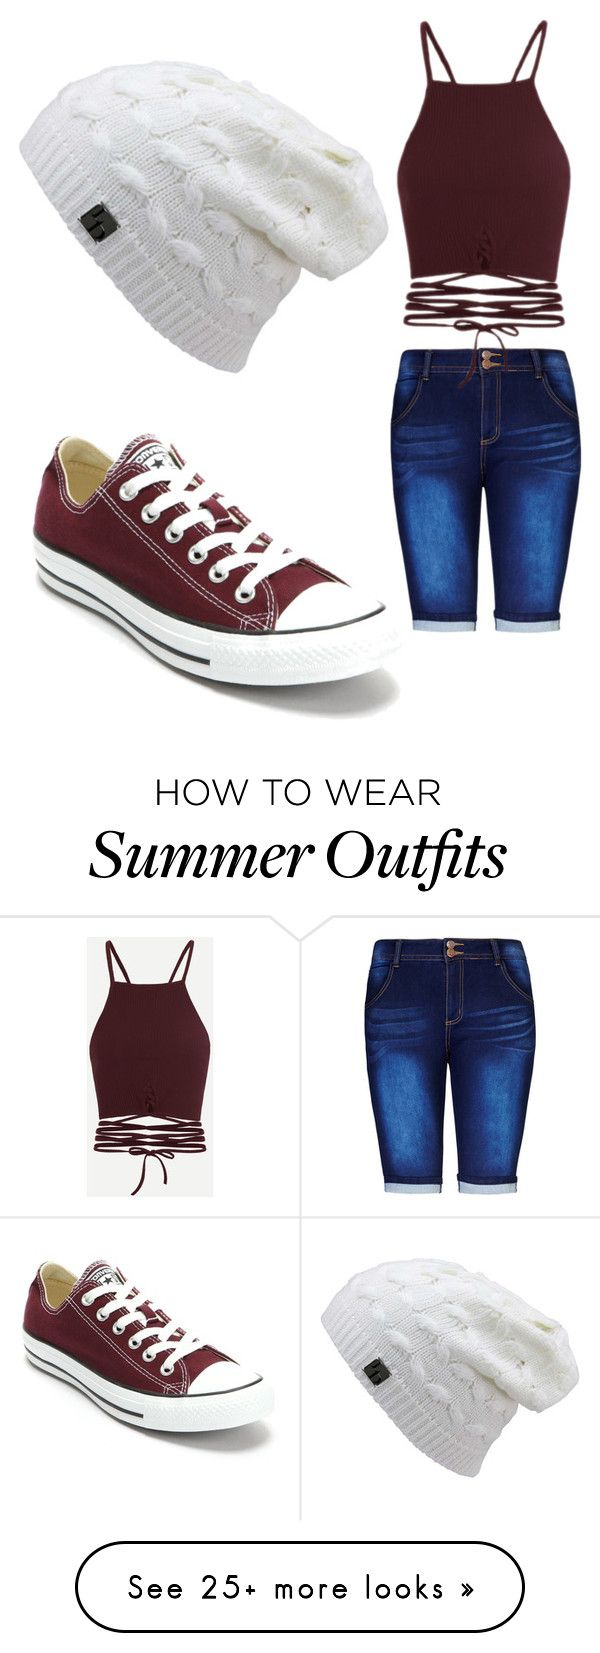 """Summer Outfit #2"" by angelica-segura on Polyvore featuring City Chic, Converse and plus size clothing"